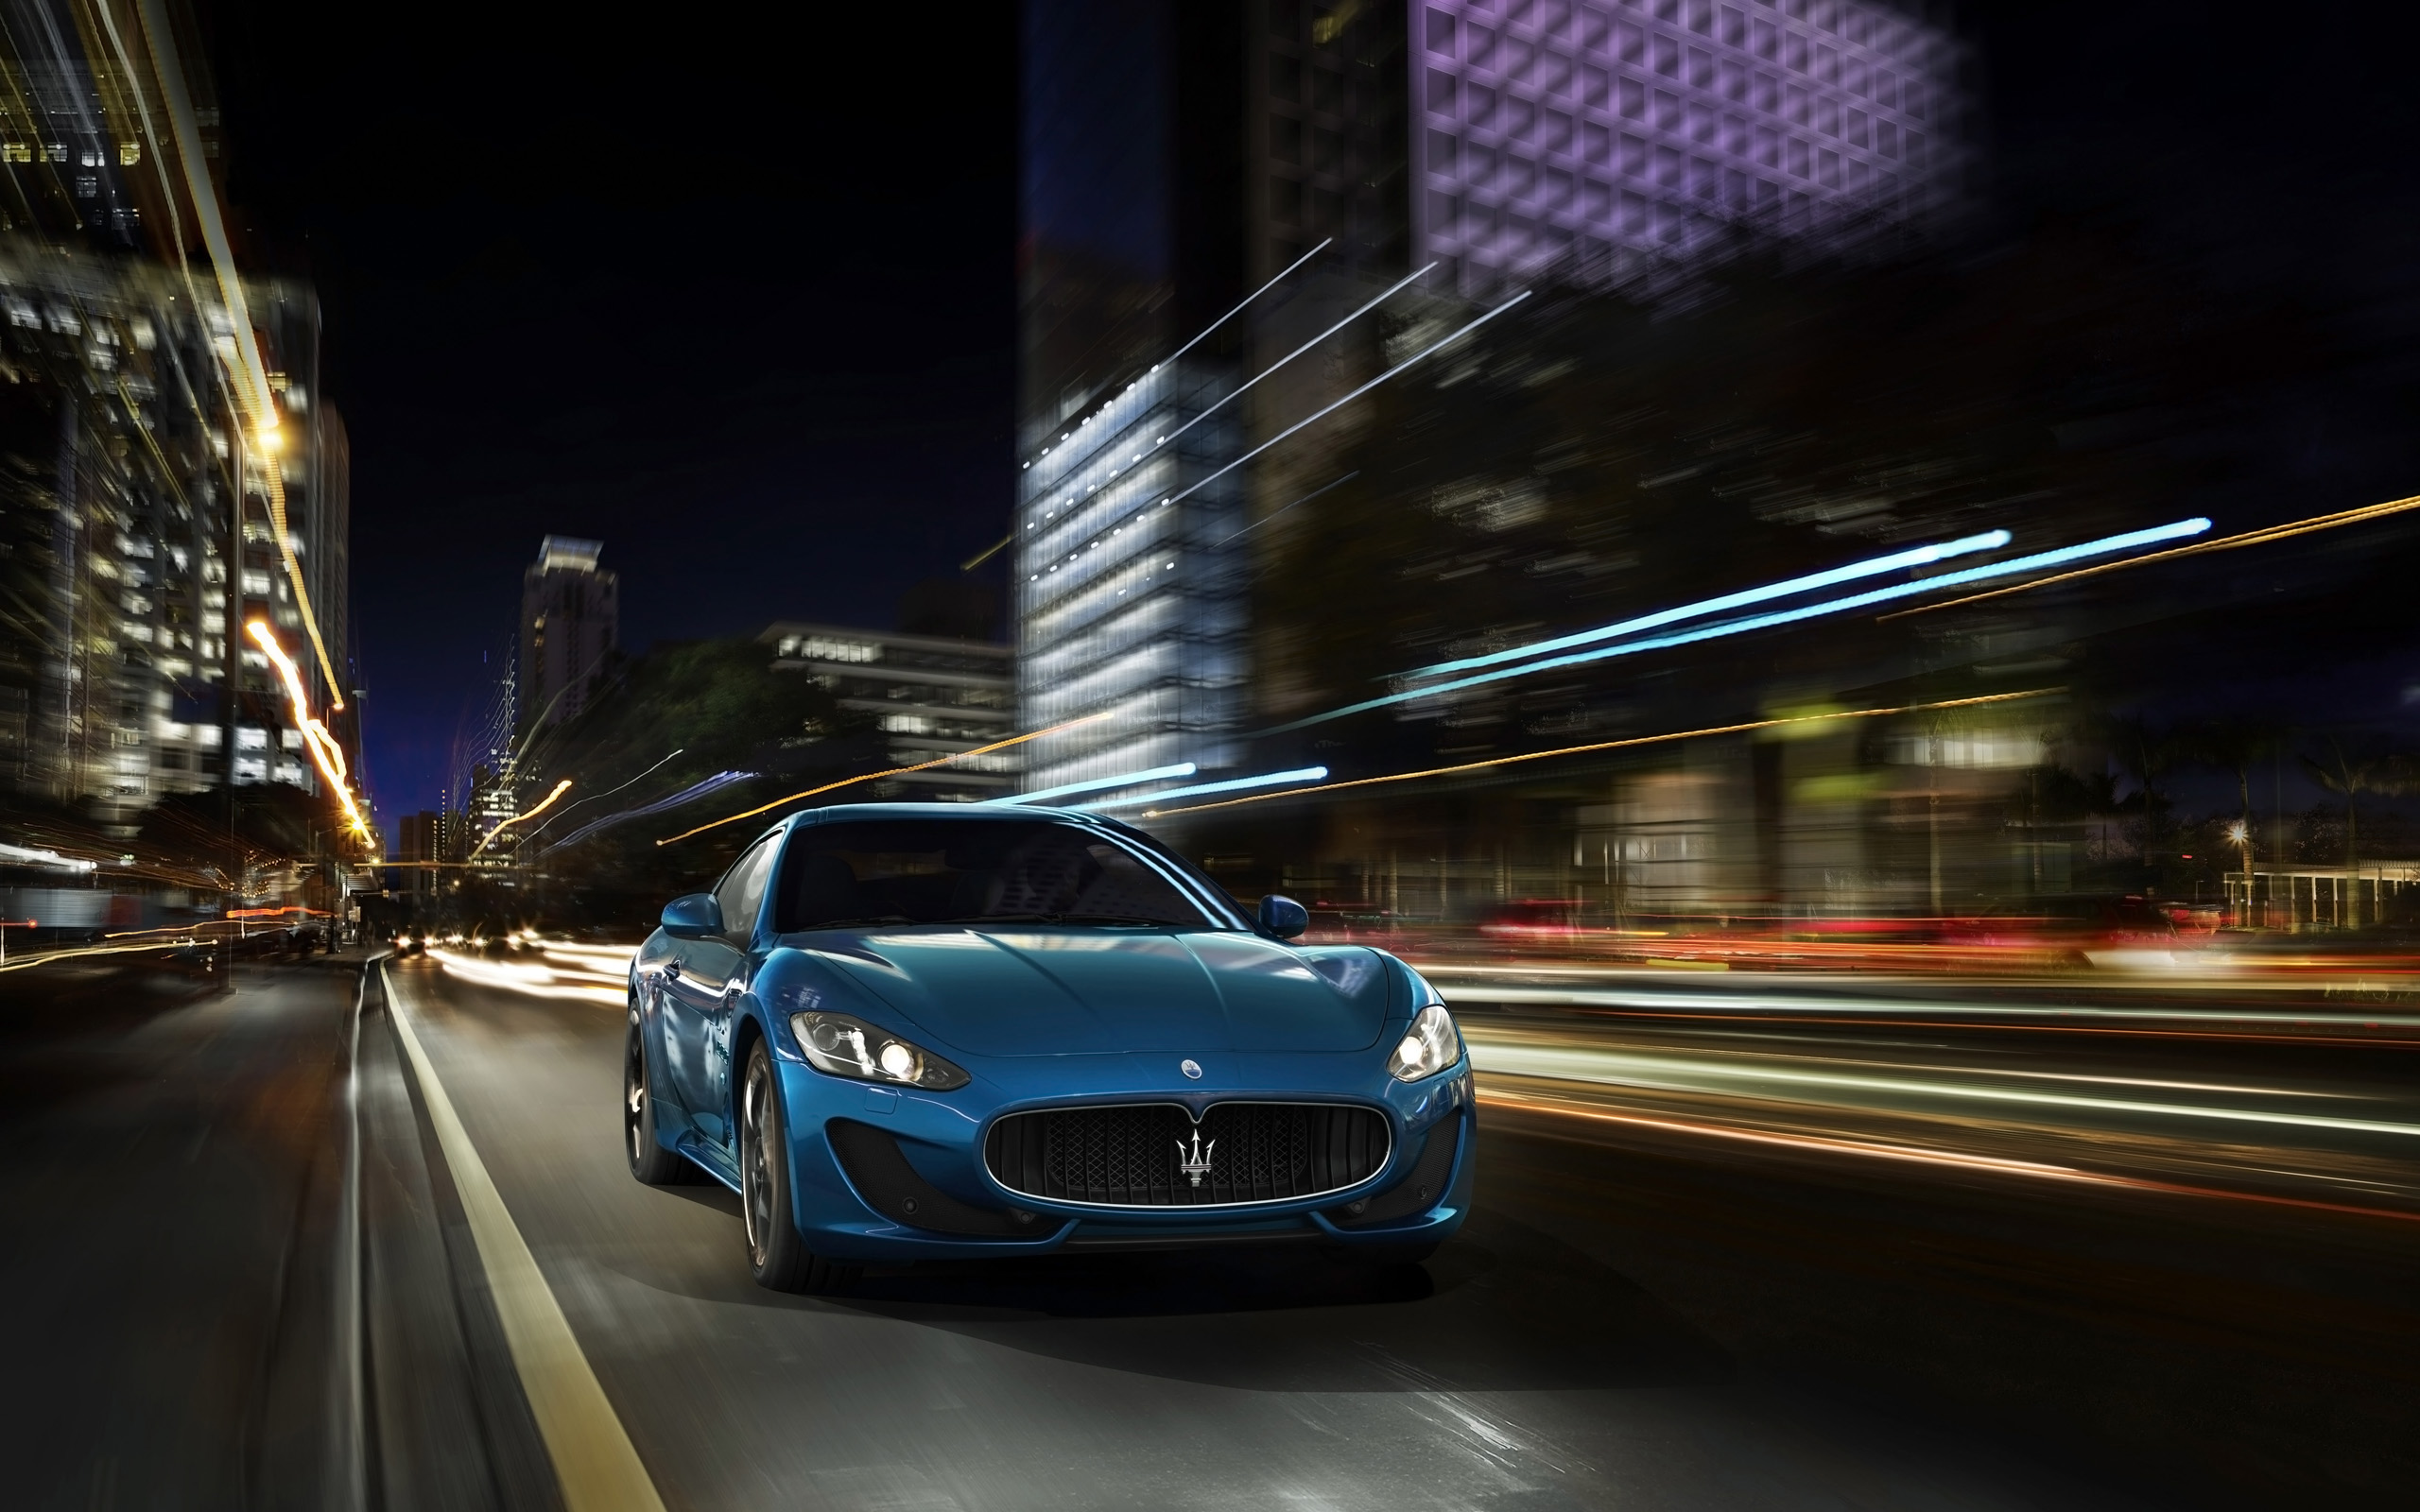 maserati quattroporte hd widescreen - photo #49